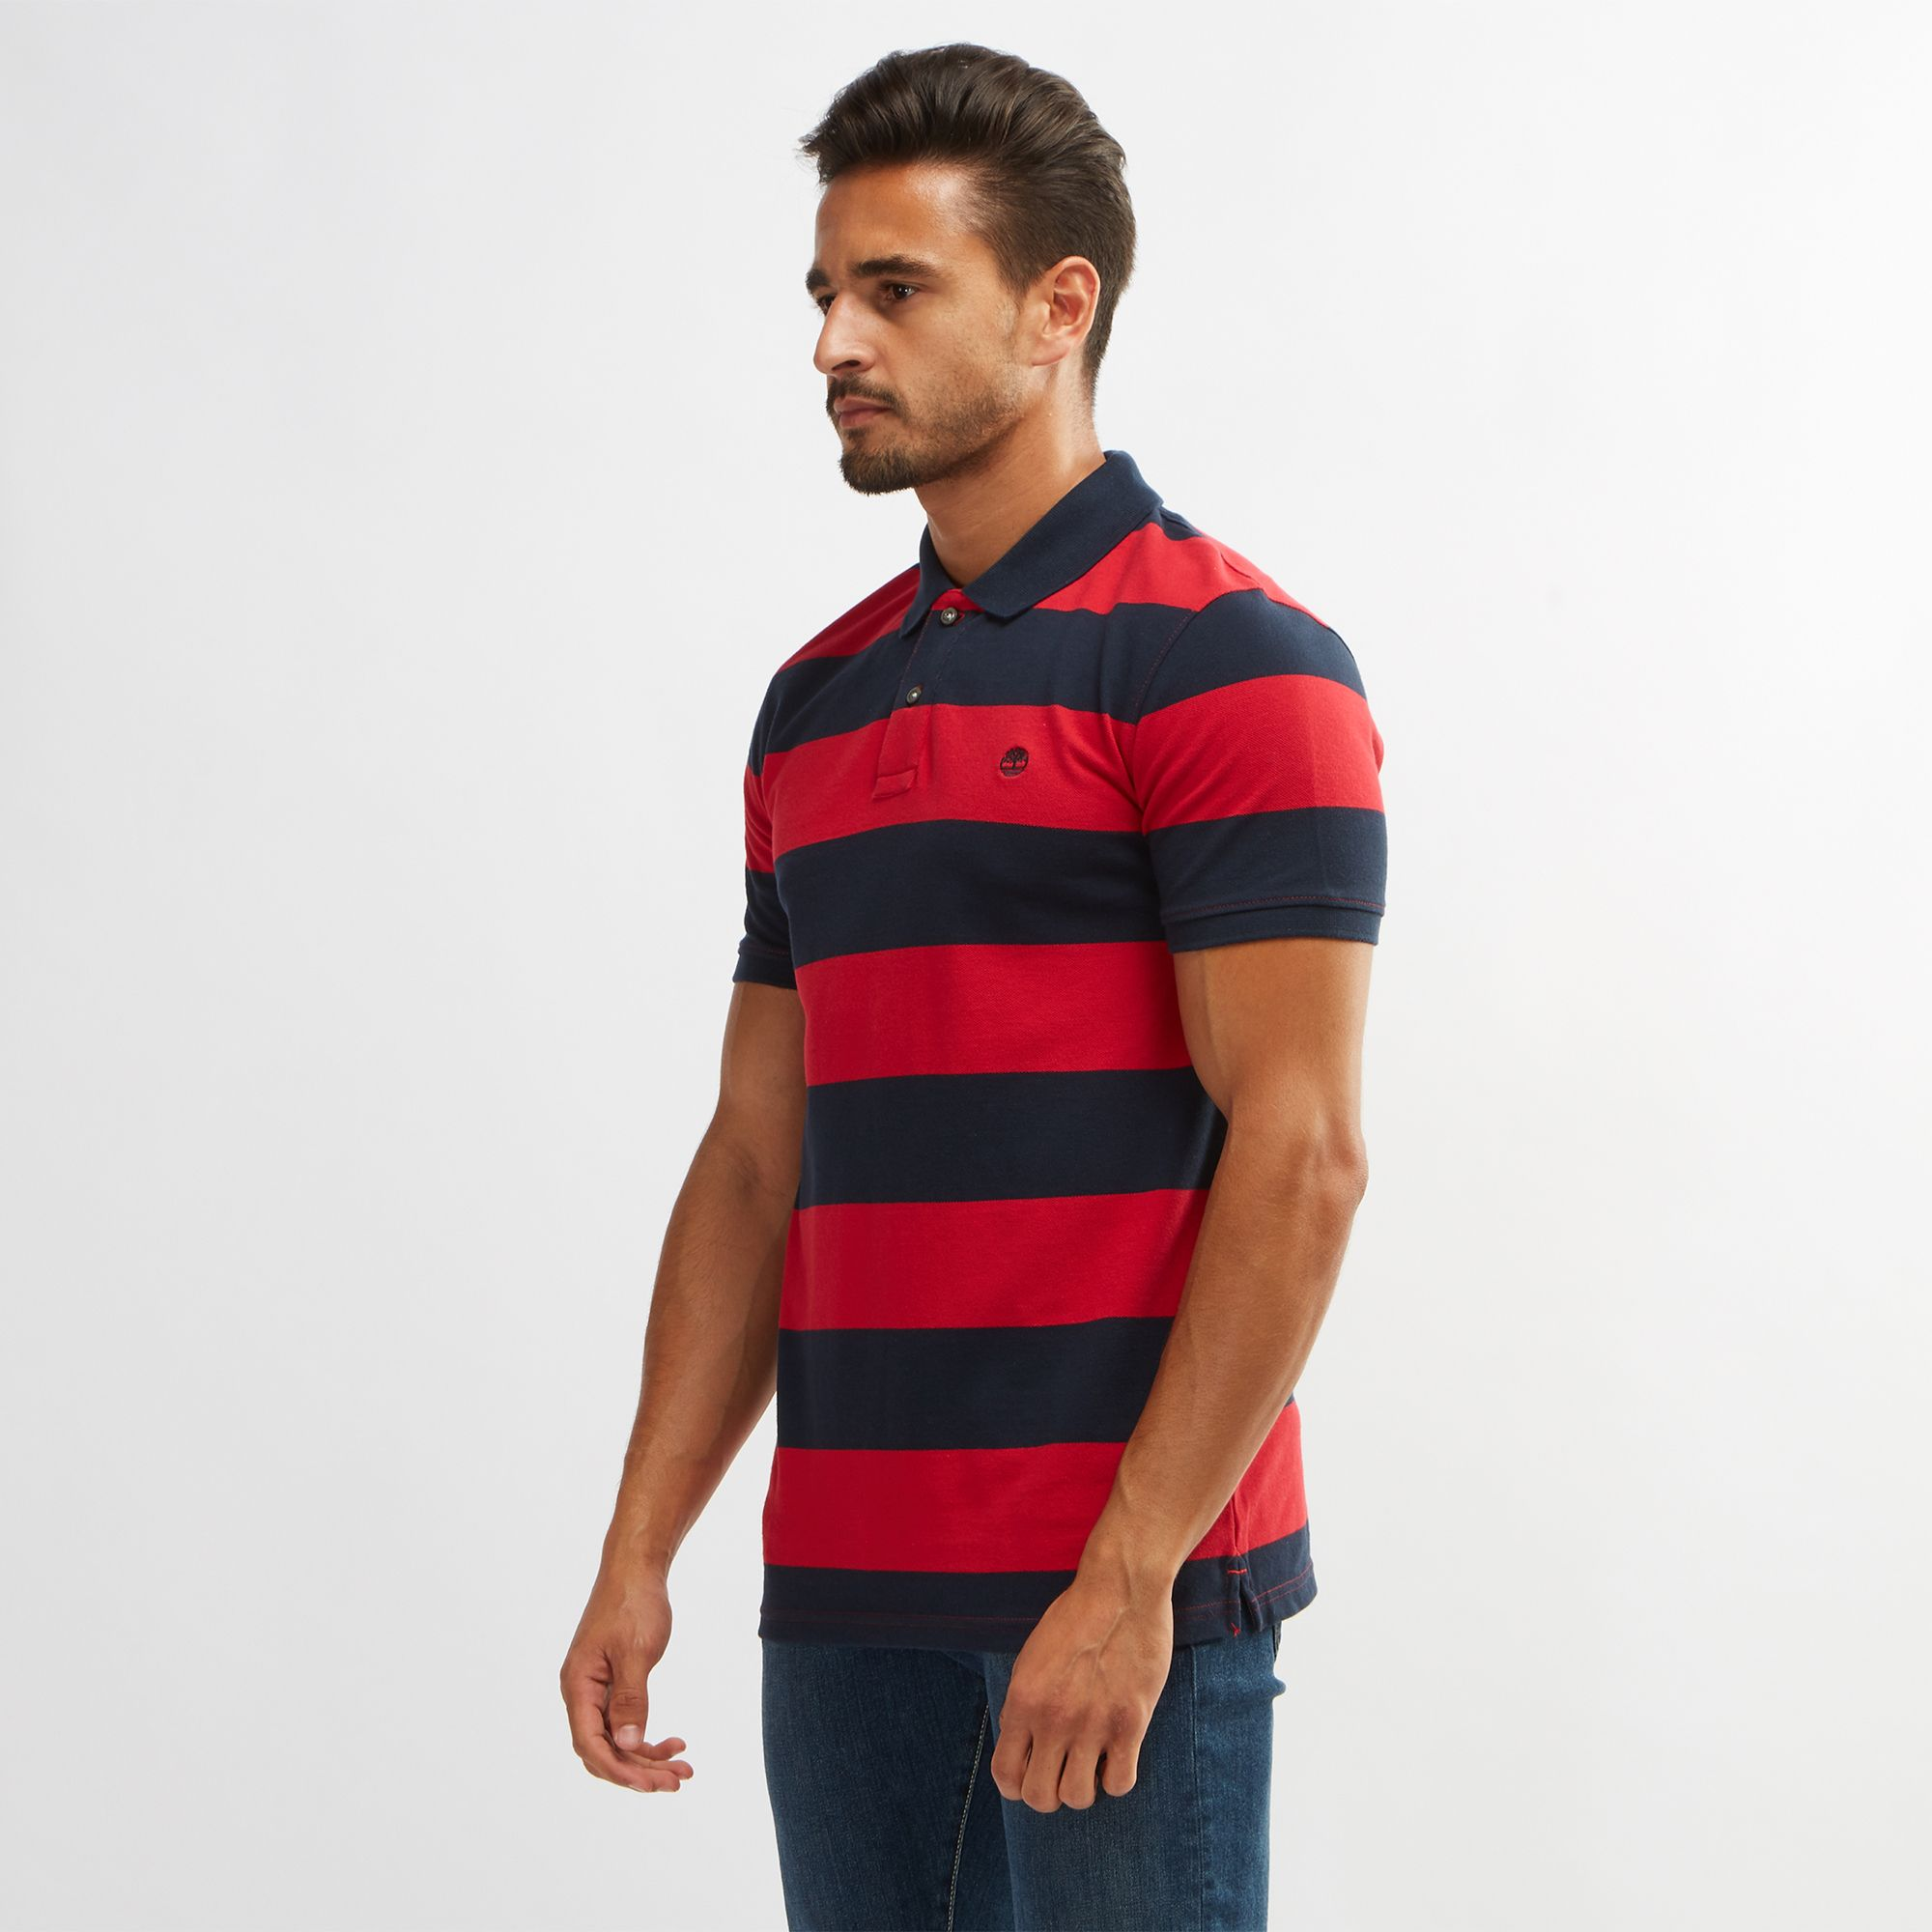 Timberland Millers River Pique Stripe Polo T Shirt Polo Shirts